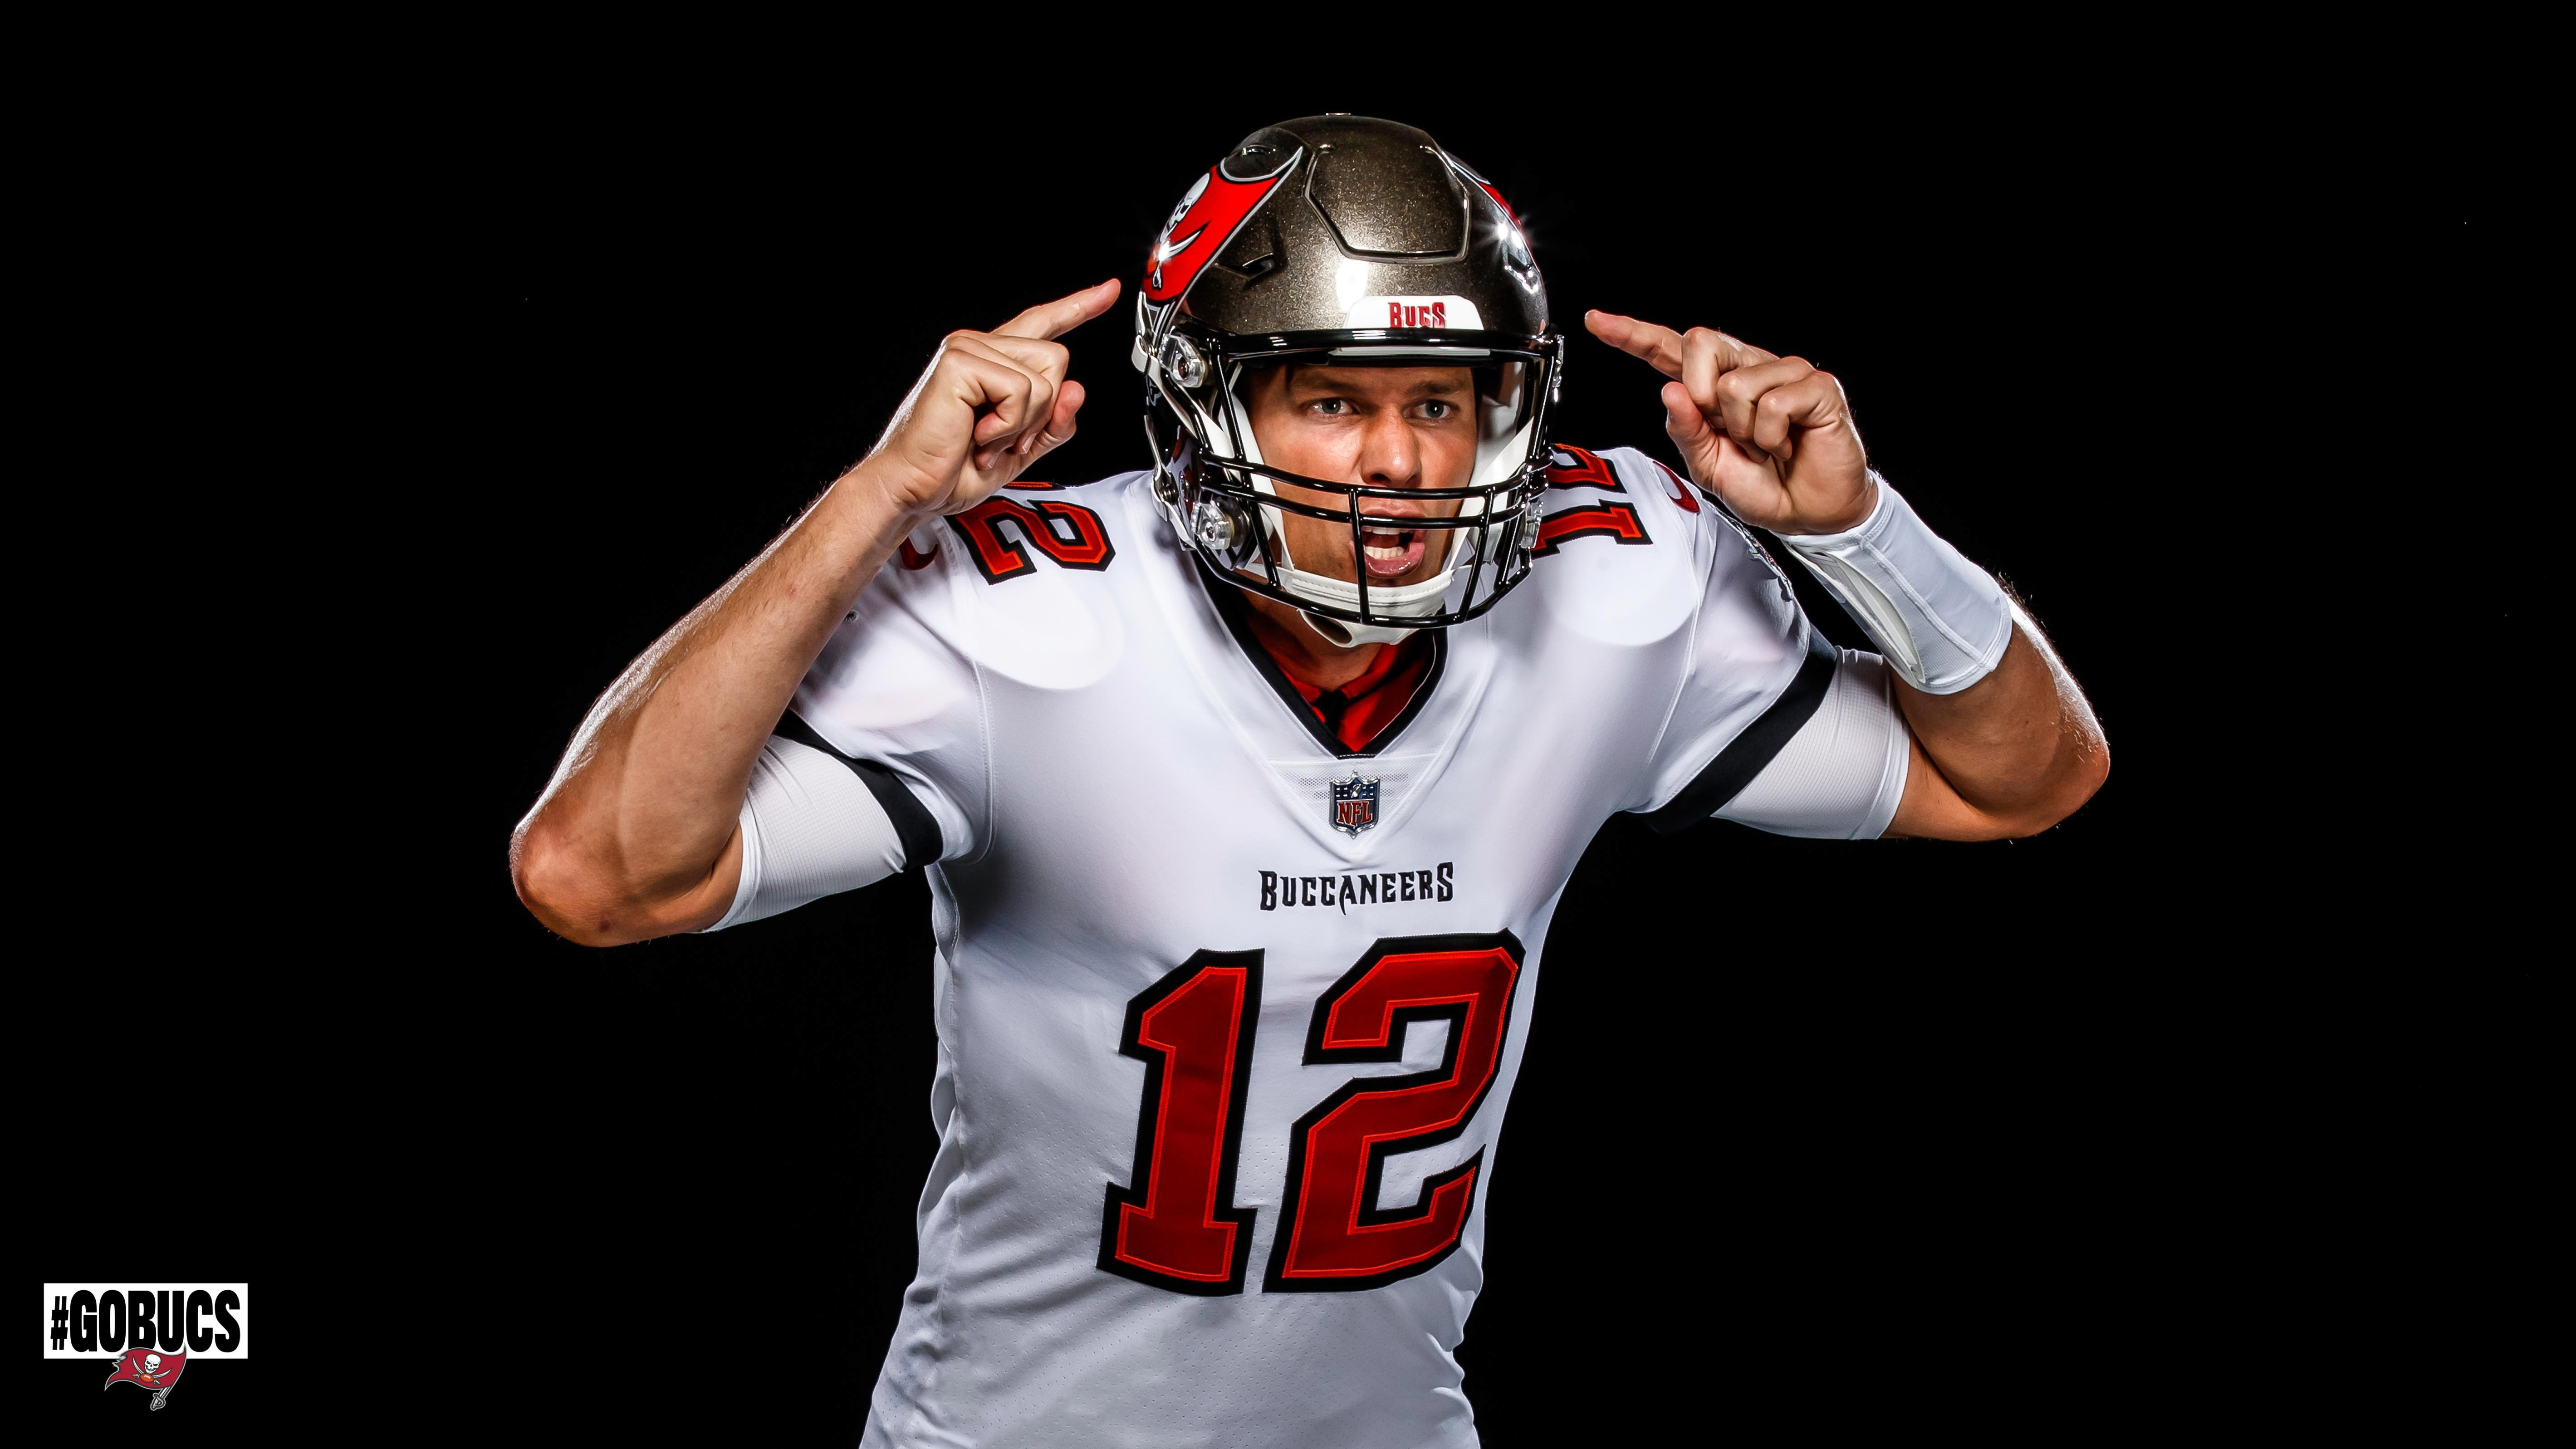 Tom Brady in a Bucs uniform: Grins and gripes from the internet